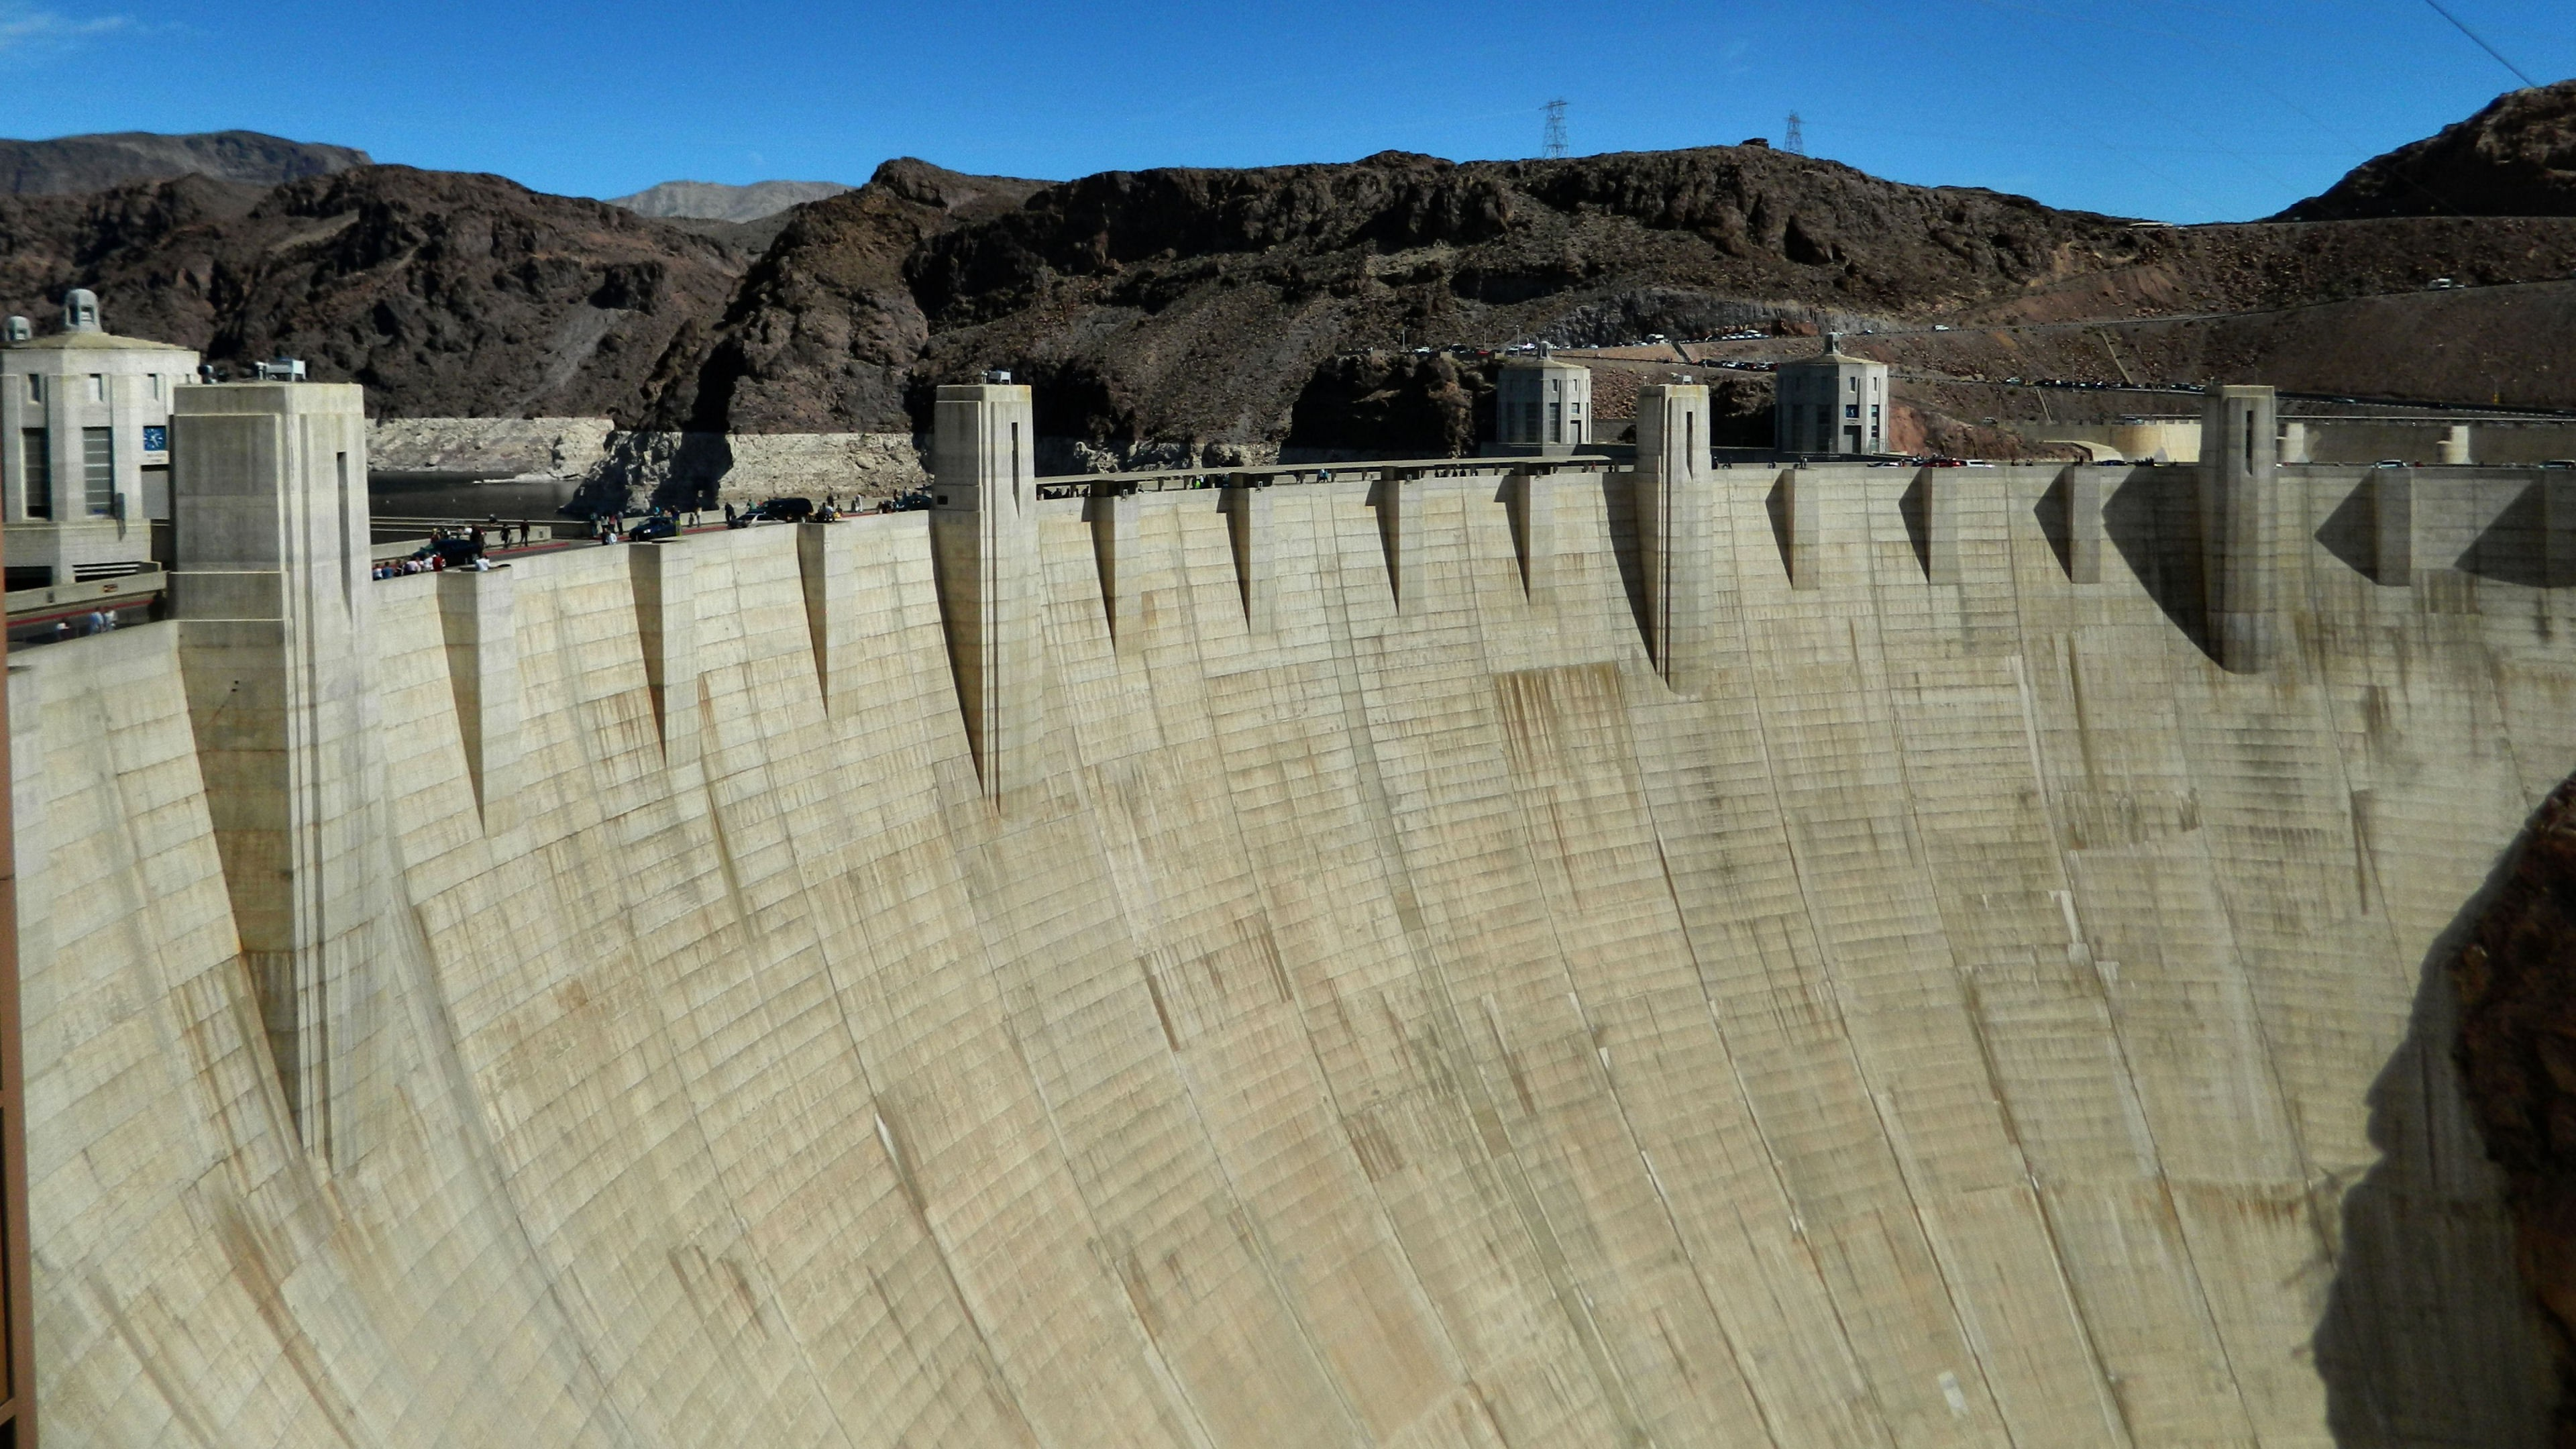 Hoover Dam Wallpaper 19   3840 X 2160 stmednet 3840x2160